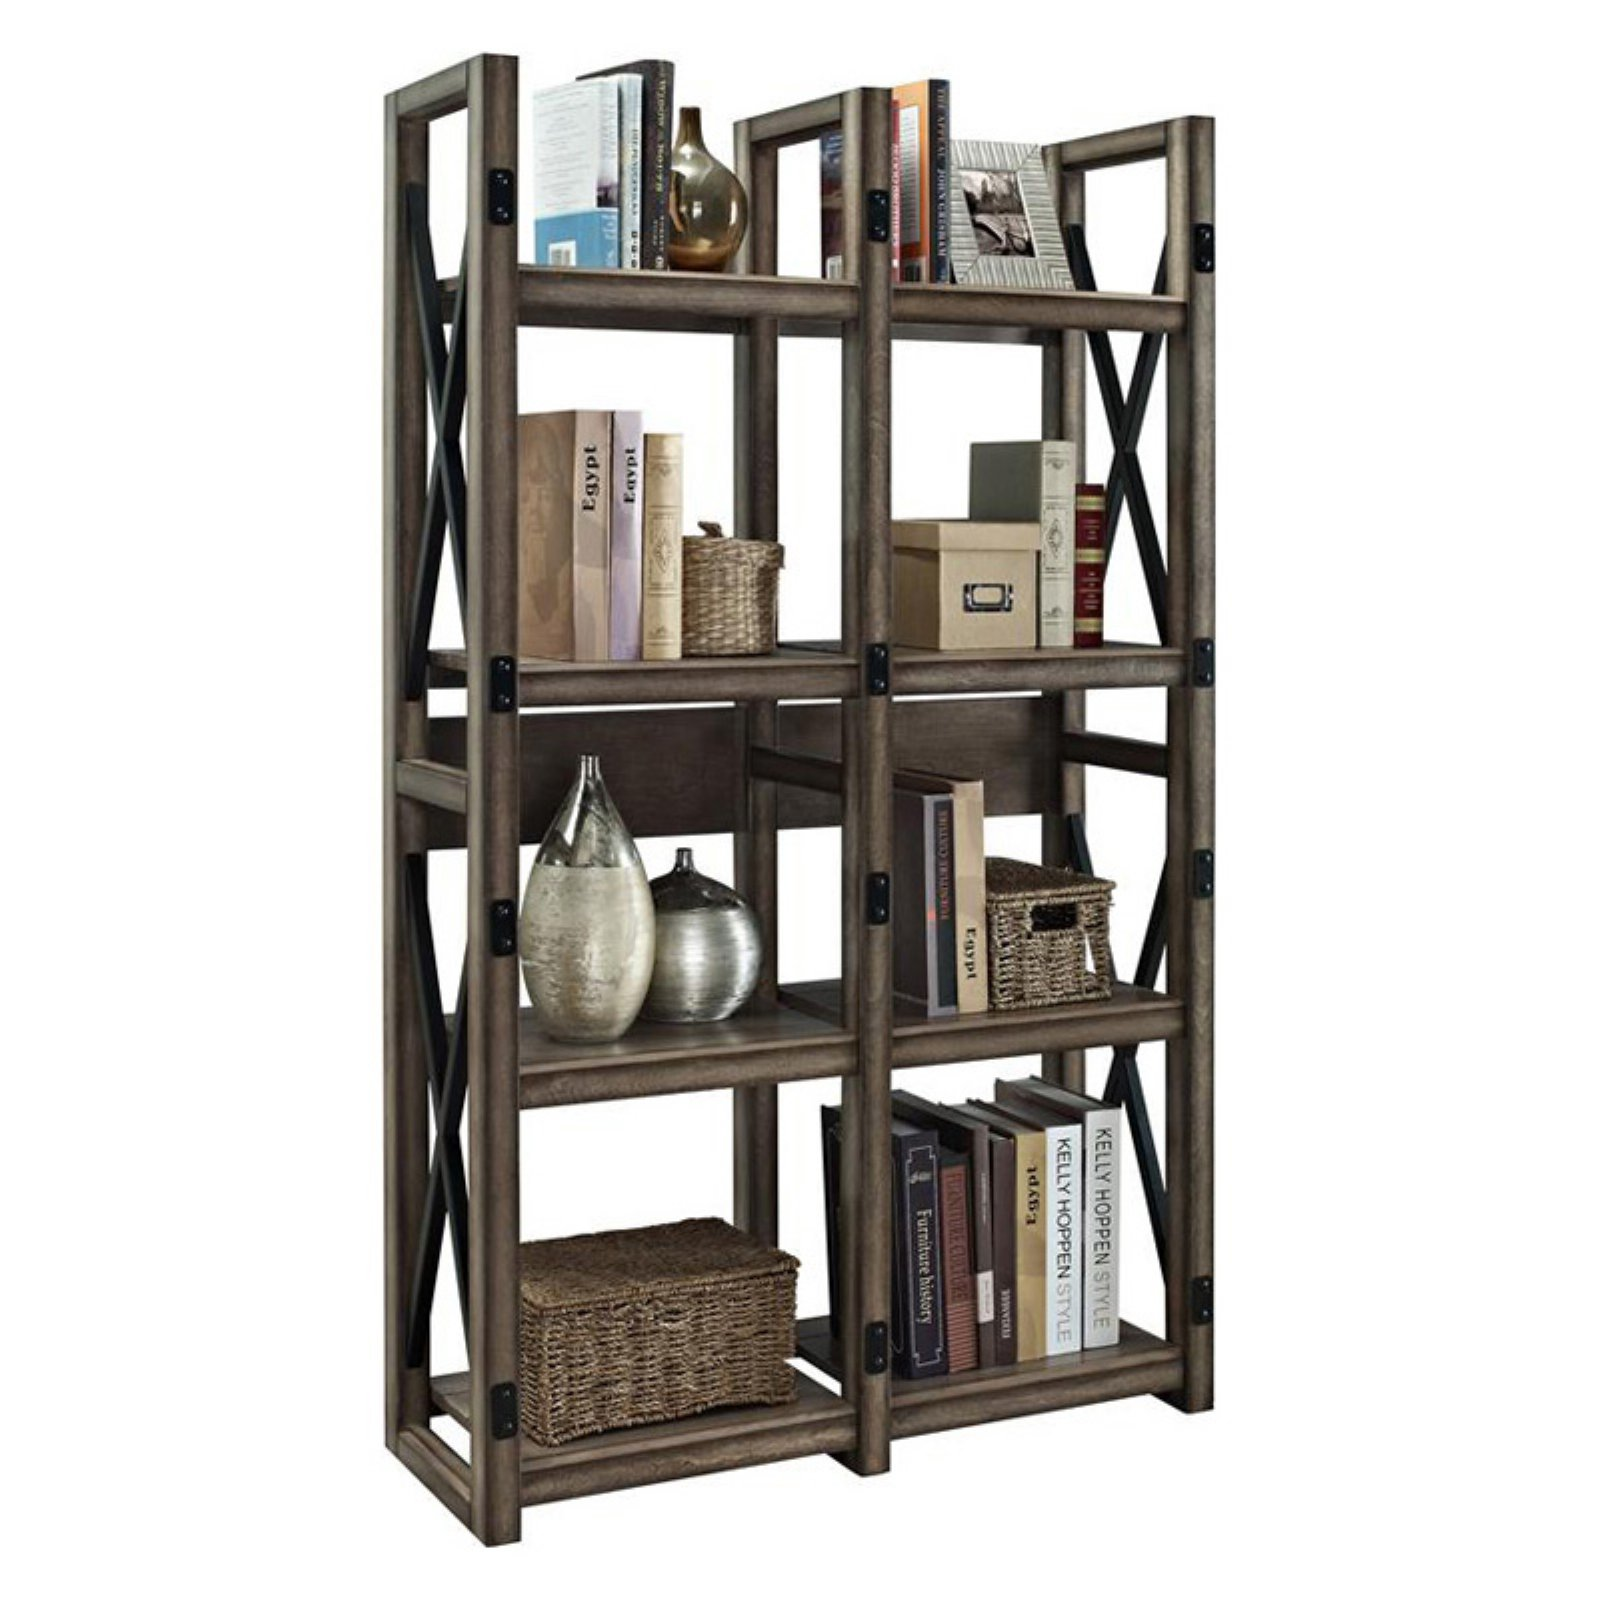 Wildwood Bookcase and Room Divider, Rustic Gray